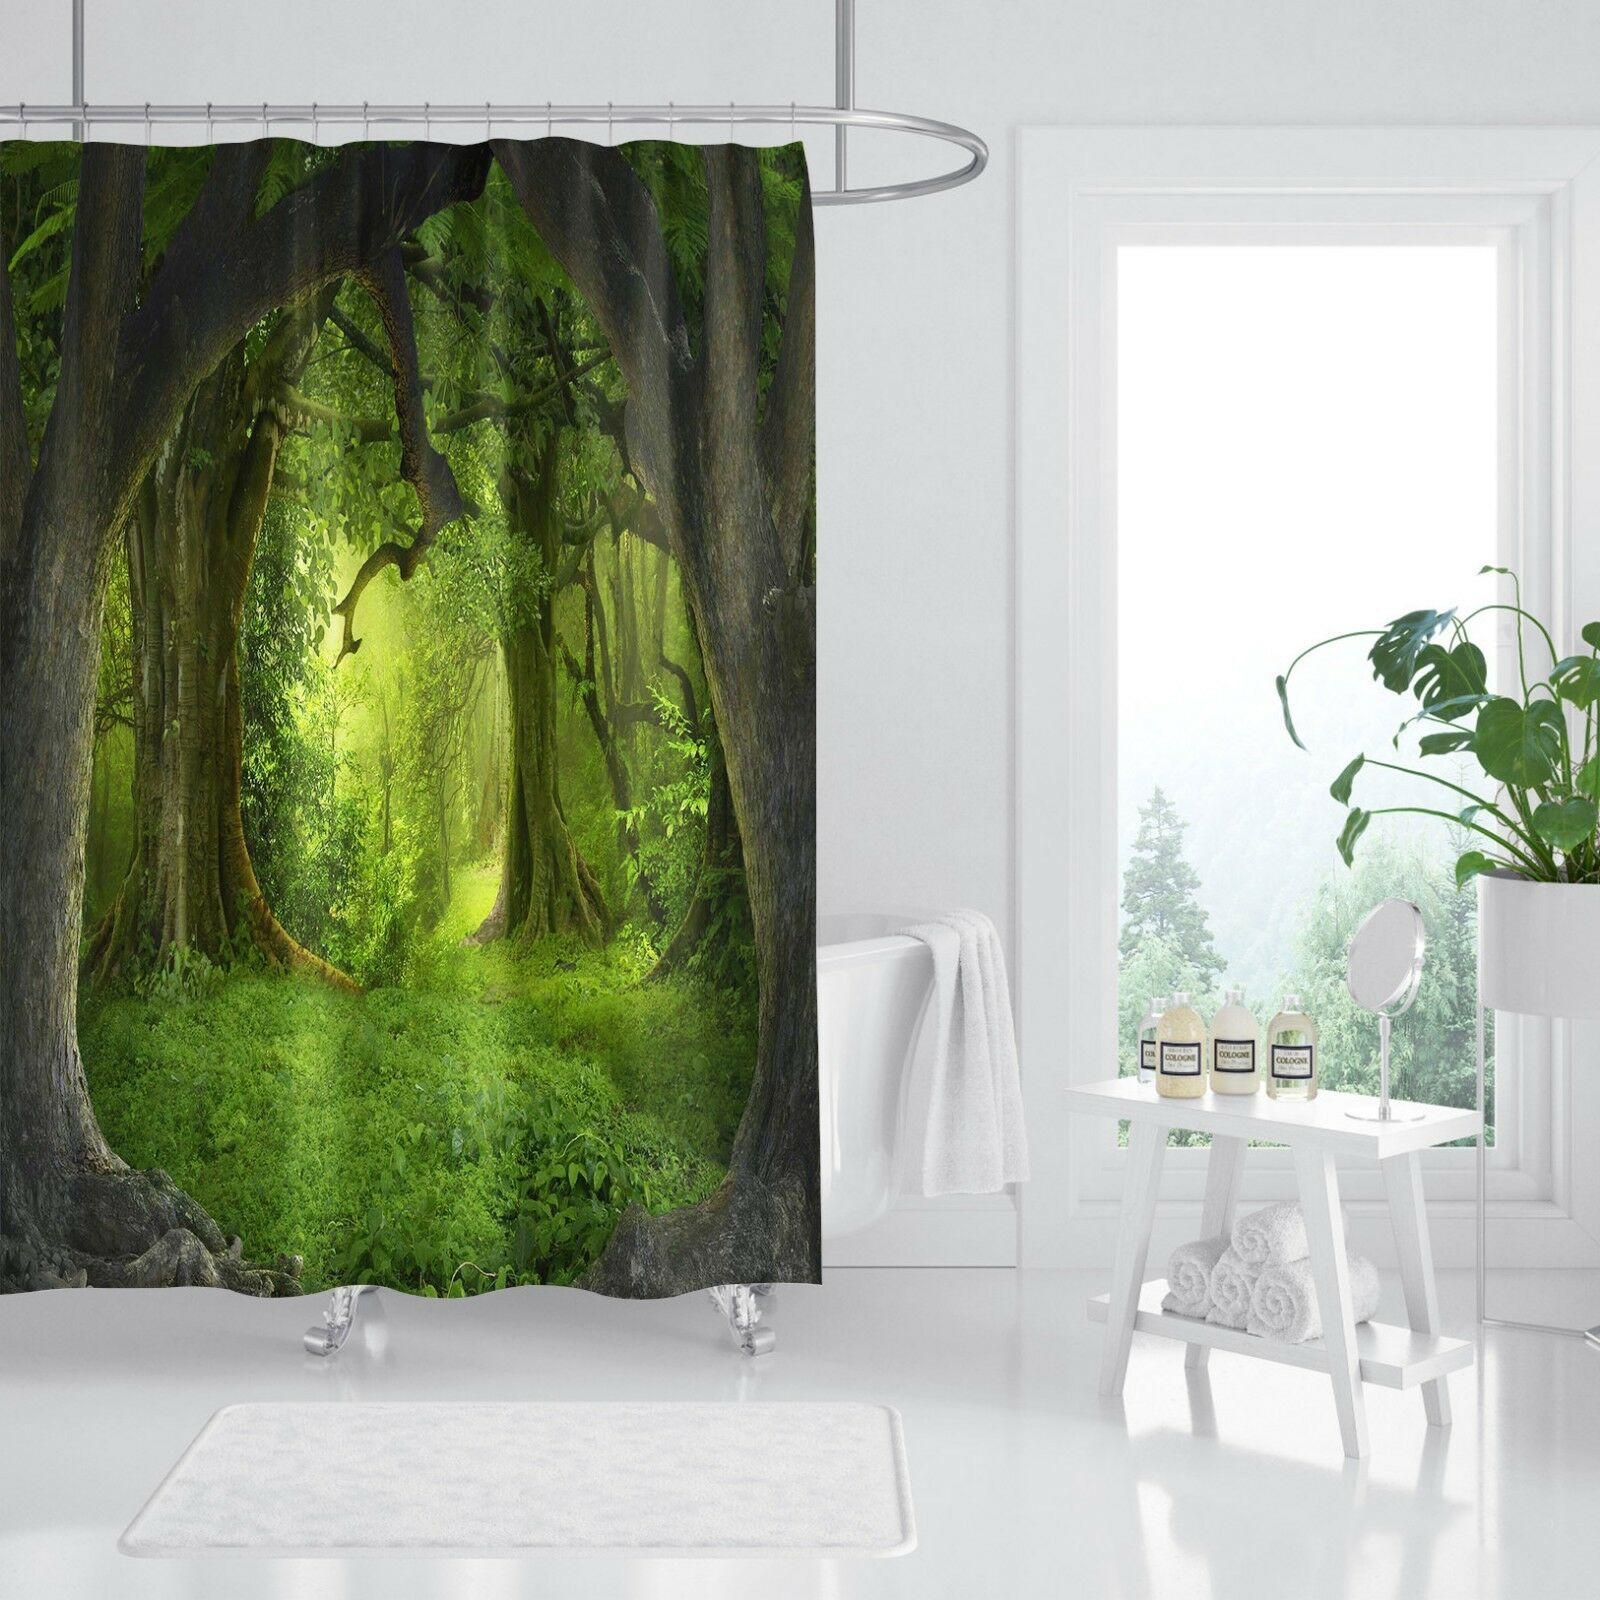 3D Tree Lawn 468 Shower Curtain Waterproof Fiber Bathroom Home Home Home Windows Toilet 0ac785